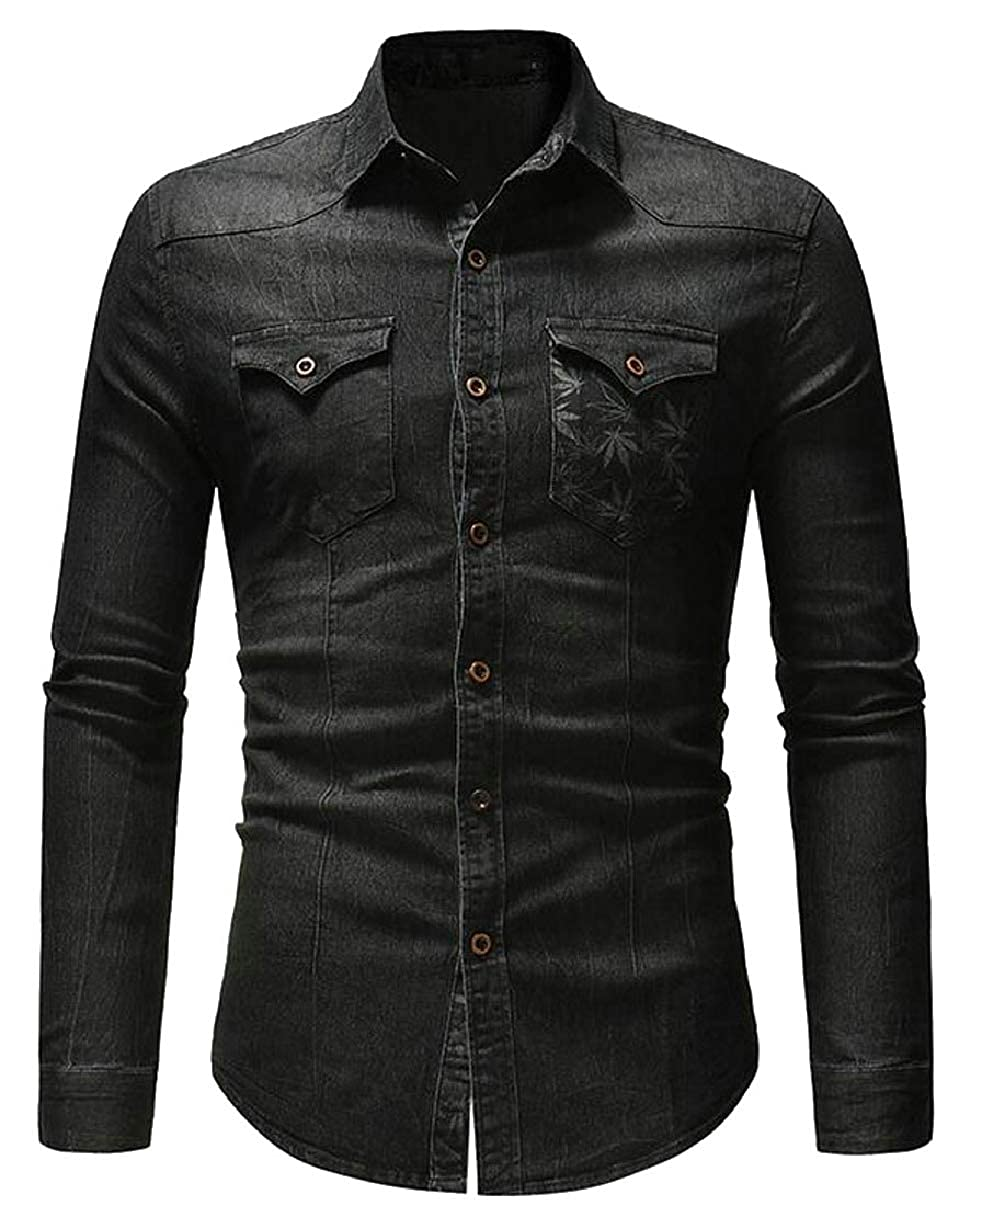 YIhujiuben Mens Casual Long Sleeve Lightweight Denim Button Down Shirts Tops